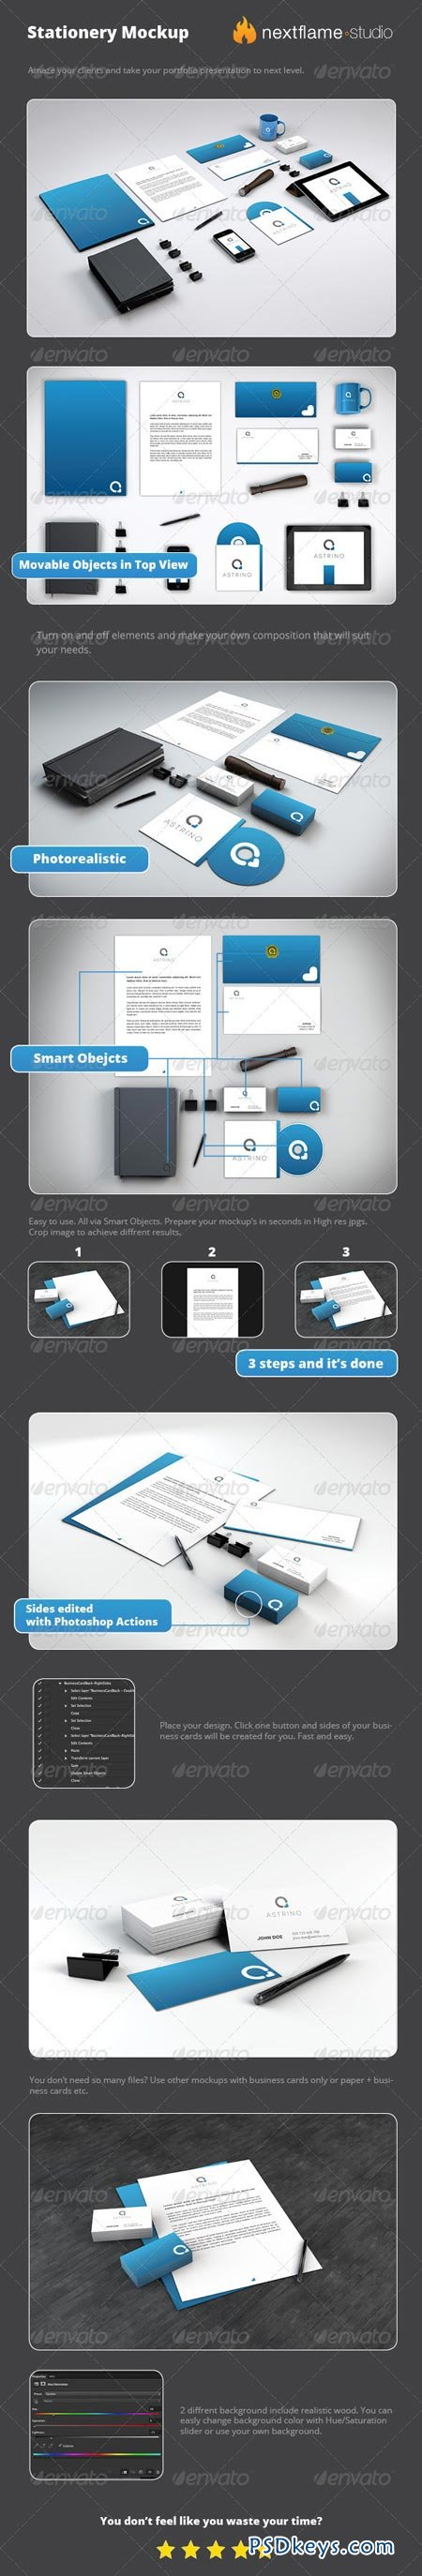 Stationery Mockup Pack - Smart Obejcts 2727487